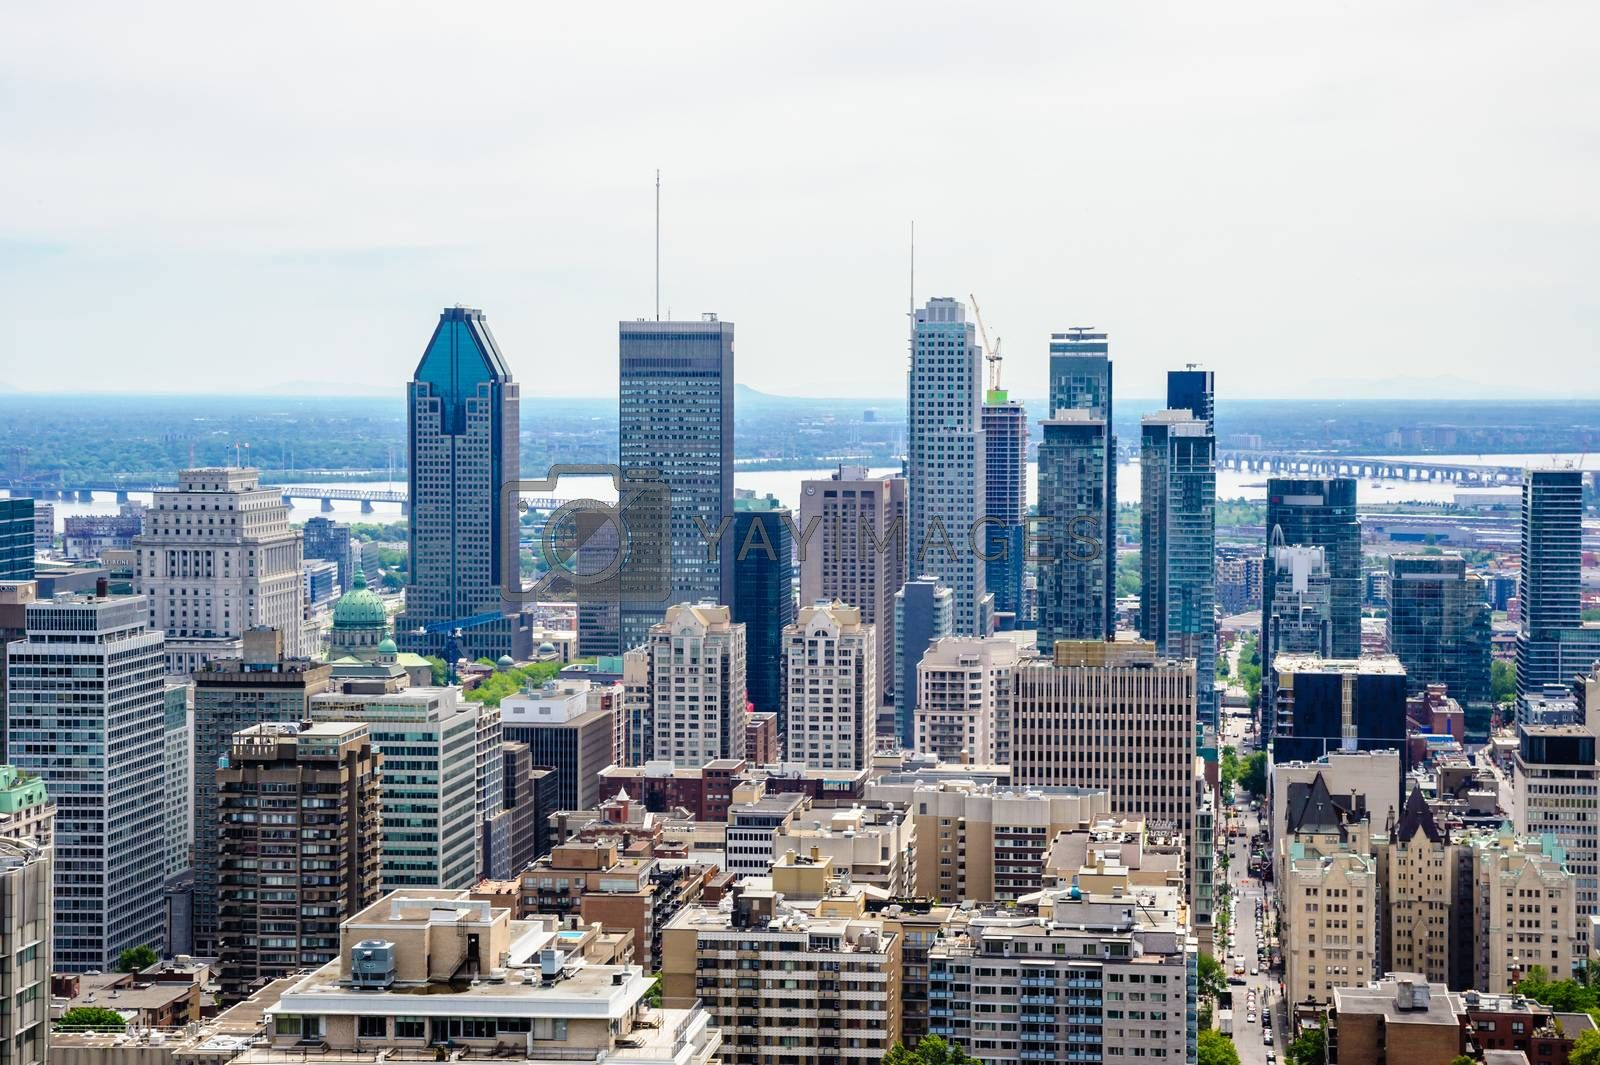 MONTREAL, CANADA - JUNE 16, 2018: The dense downtown and surrounding areas can be seen looking east from Mount Royal.